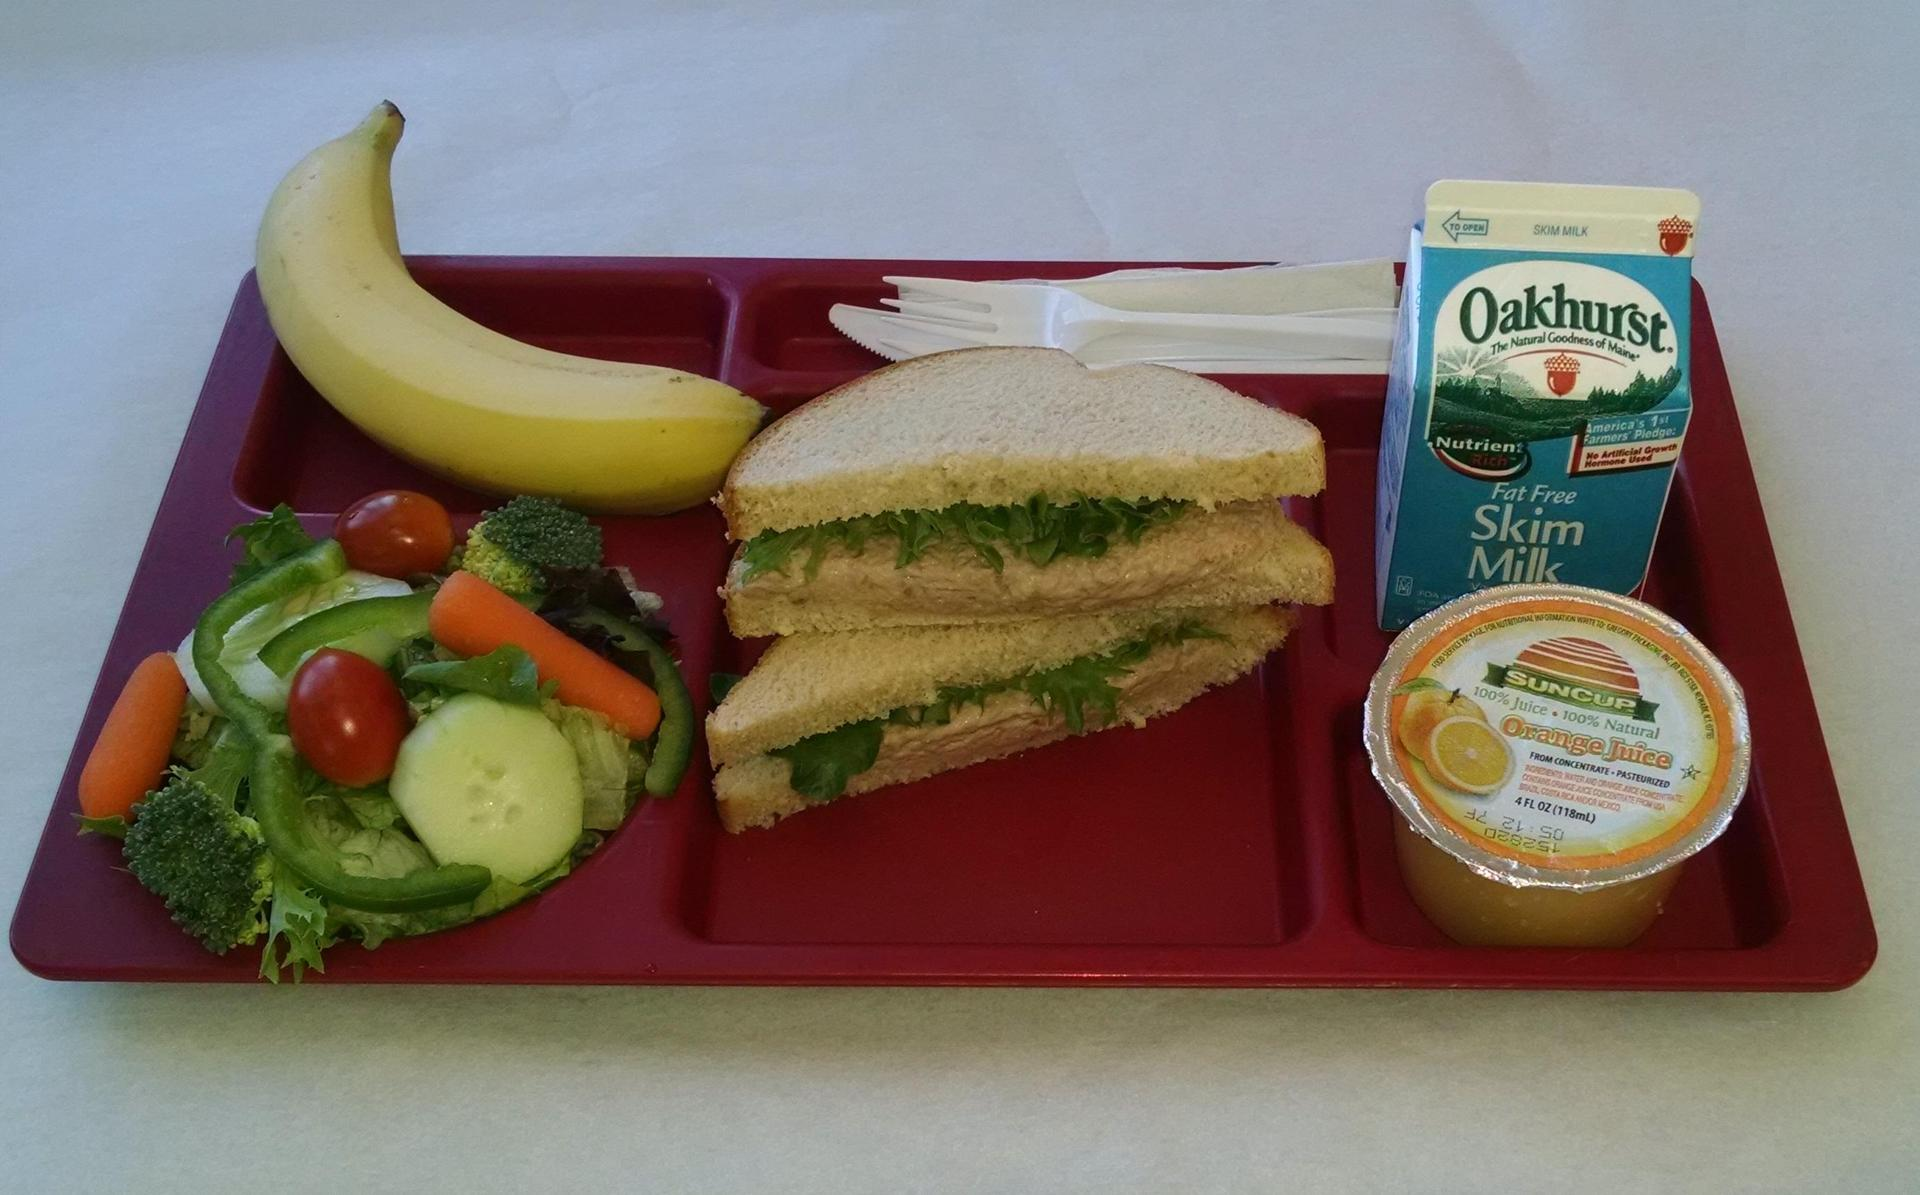 Tuna Salad, Salad, Banana, 100% Juice and Milk